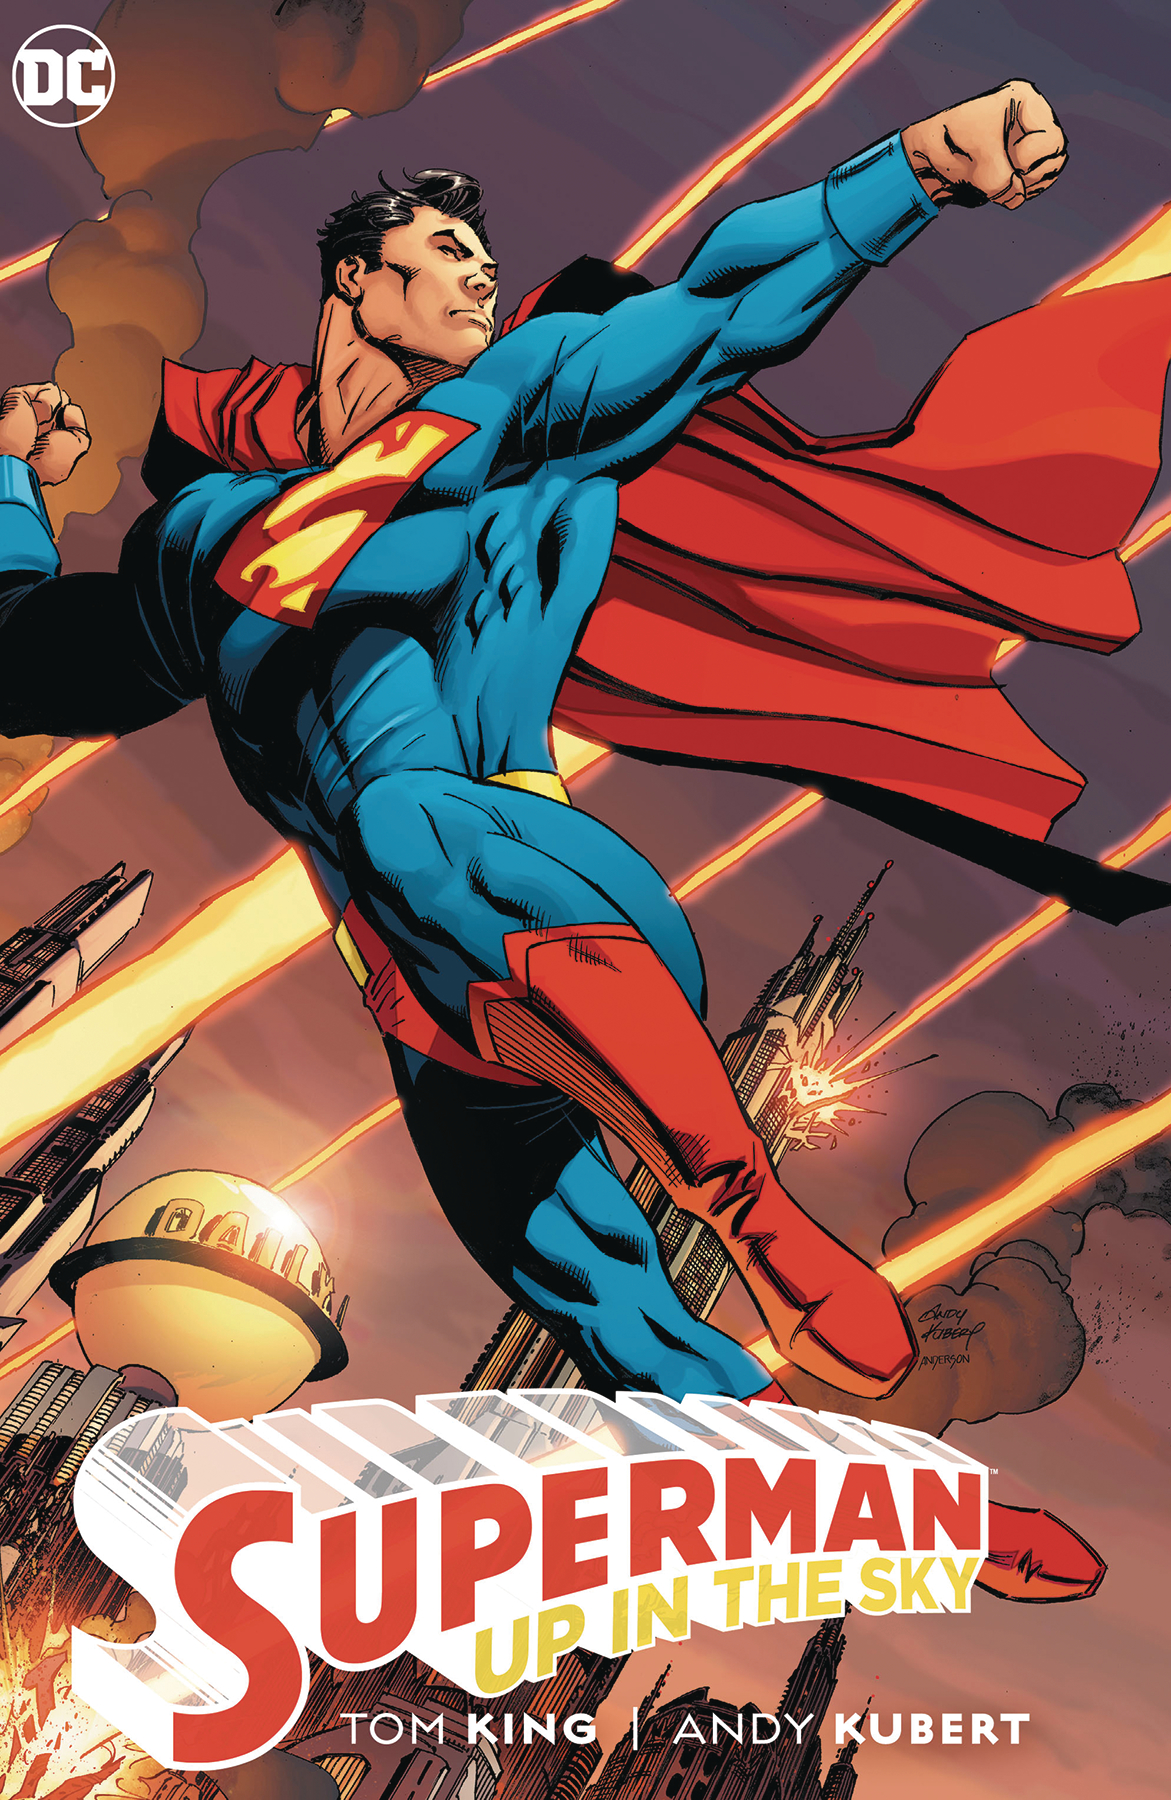 SUPERMAN UP IN THE SKY HC